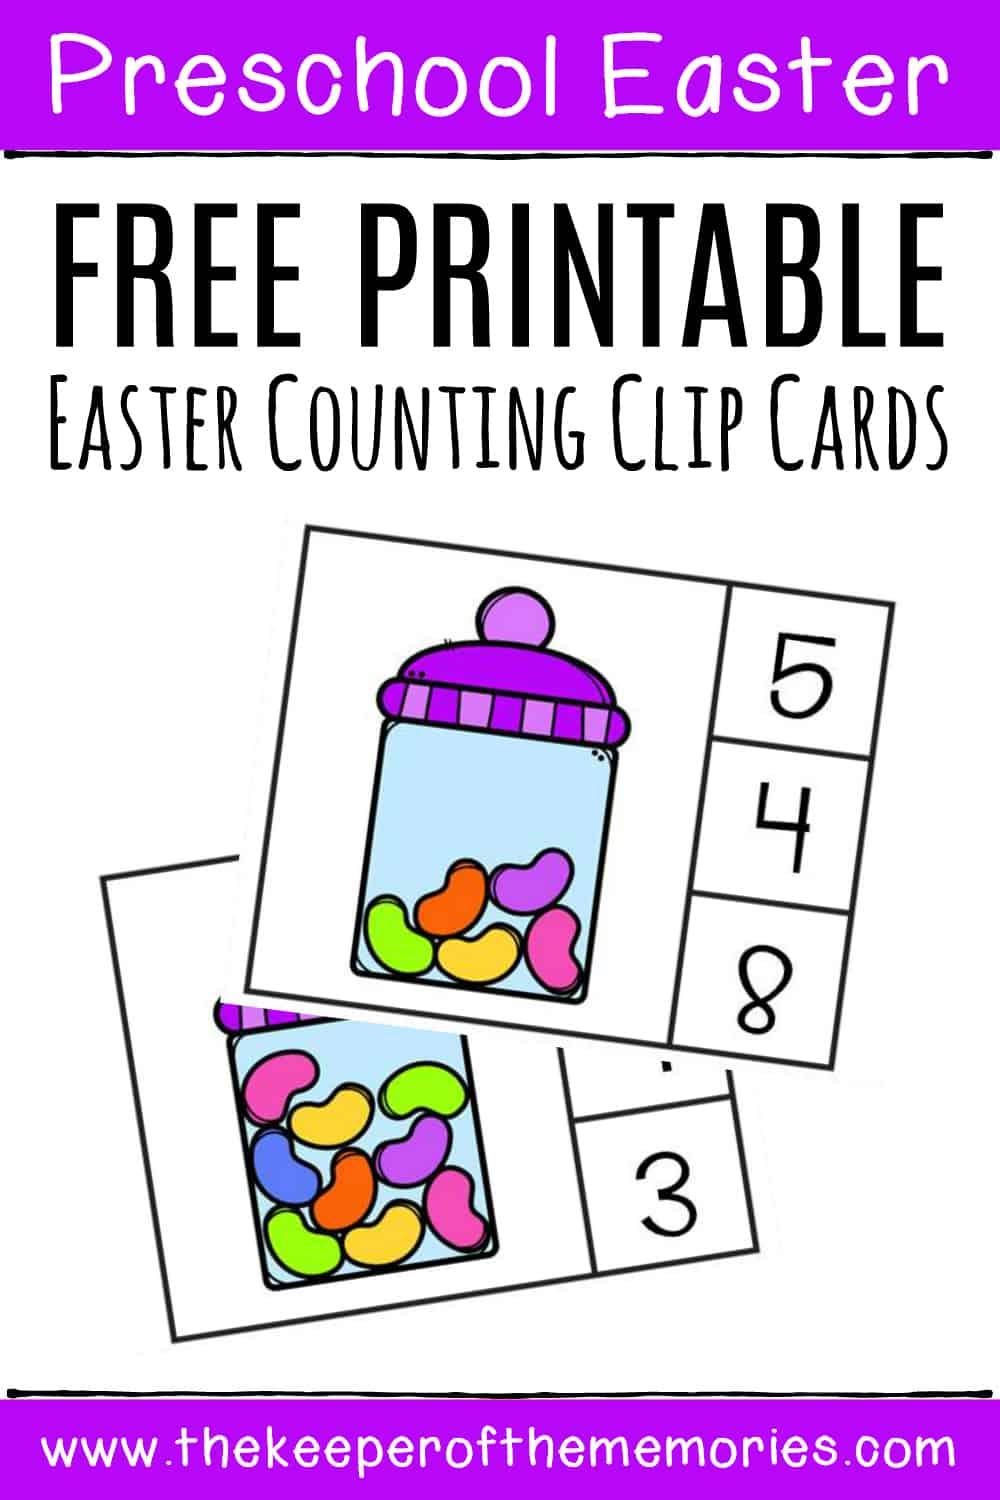 Free Printable Jelly Bean Easter Counting Clip Cards